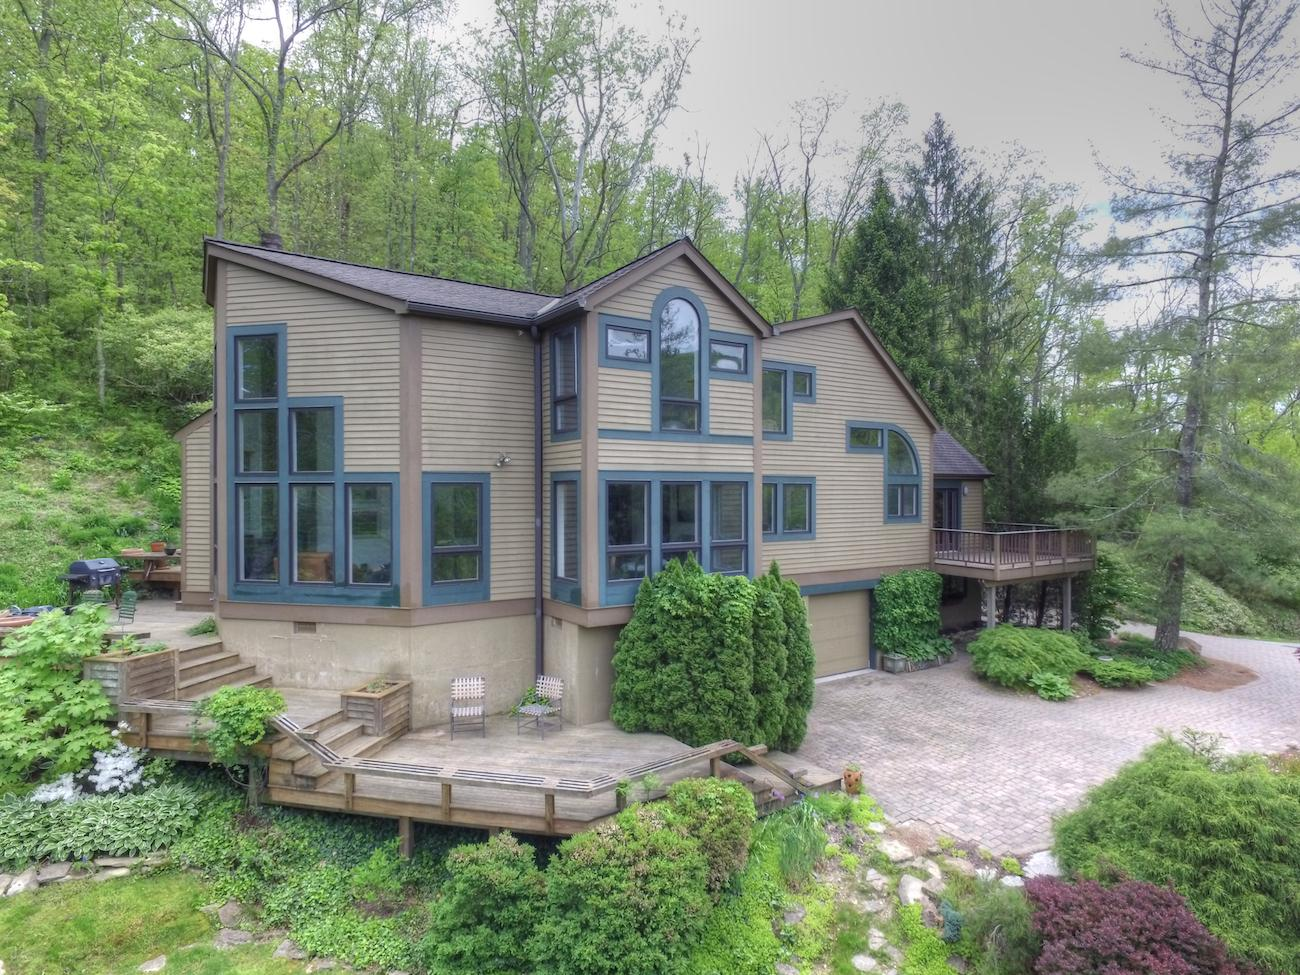 460 Eight Mile Road is a 4-bedroom, 4-bathroom home located on 6.7 acres of land in Anderson Township. And it's currently on the market for $575,000. / Image: Massey Green AVP, courtesy of the Oyler Group at Coldwell Banker West Shell // Published: 6.26.17